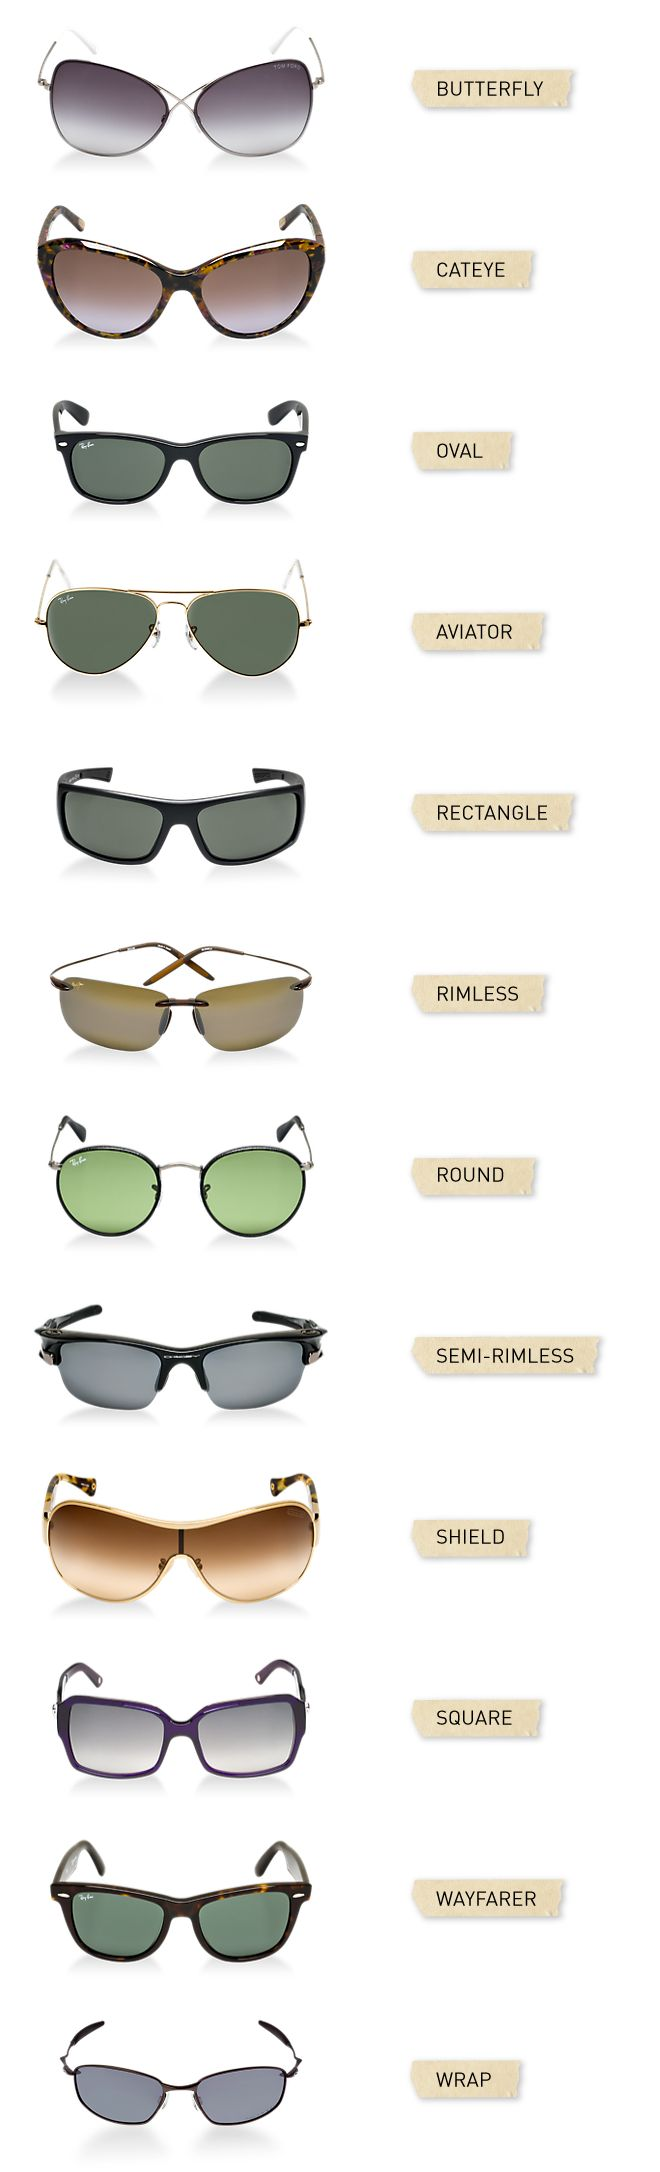 Types Of Sunglasses « Heritage Malta